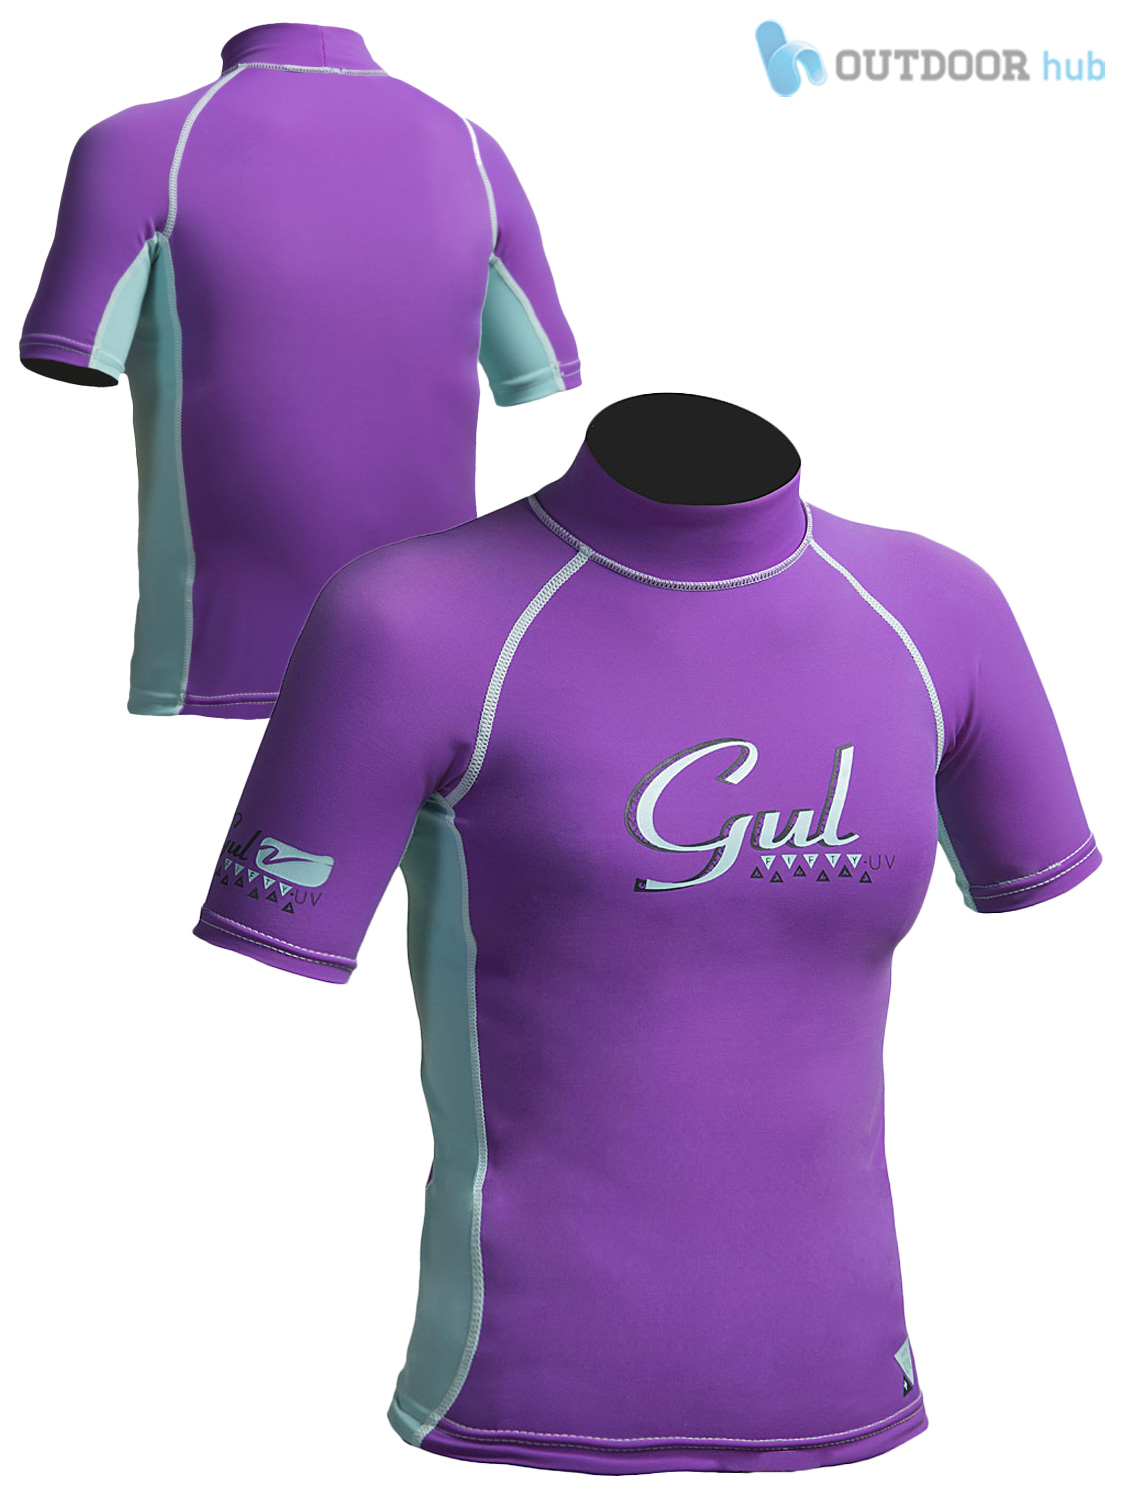 Gul girls short sleeve rash vest guard watersport beach swim uv sun wetsuit kids ebay for Rash after swimming in pool pictures